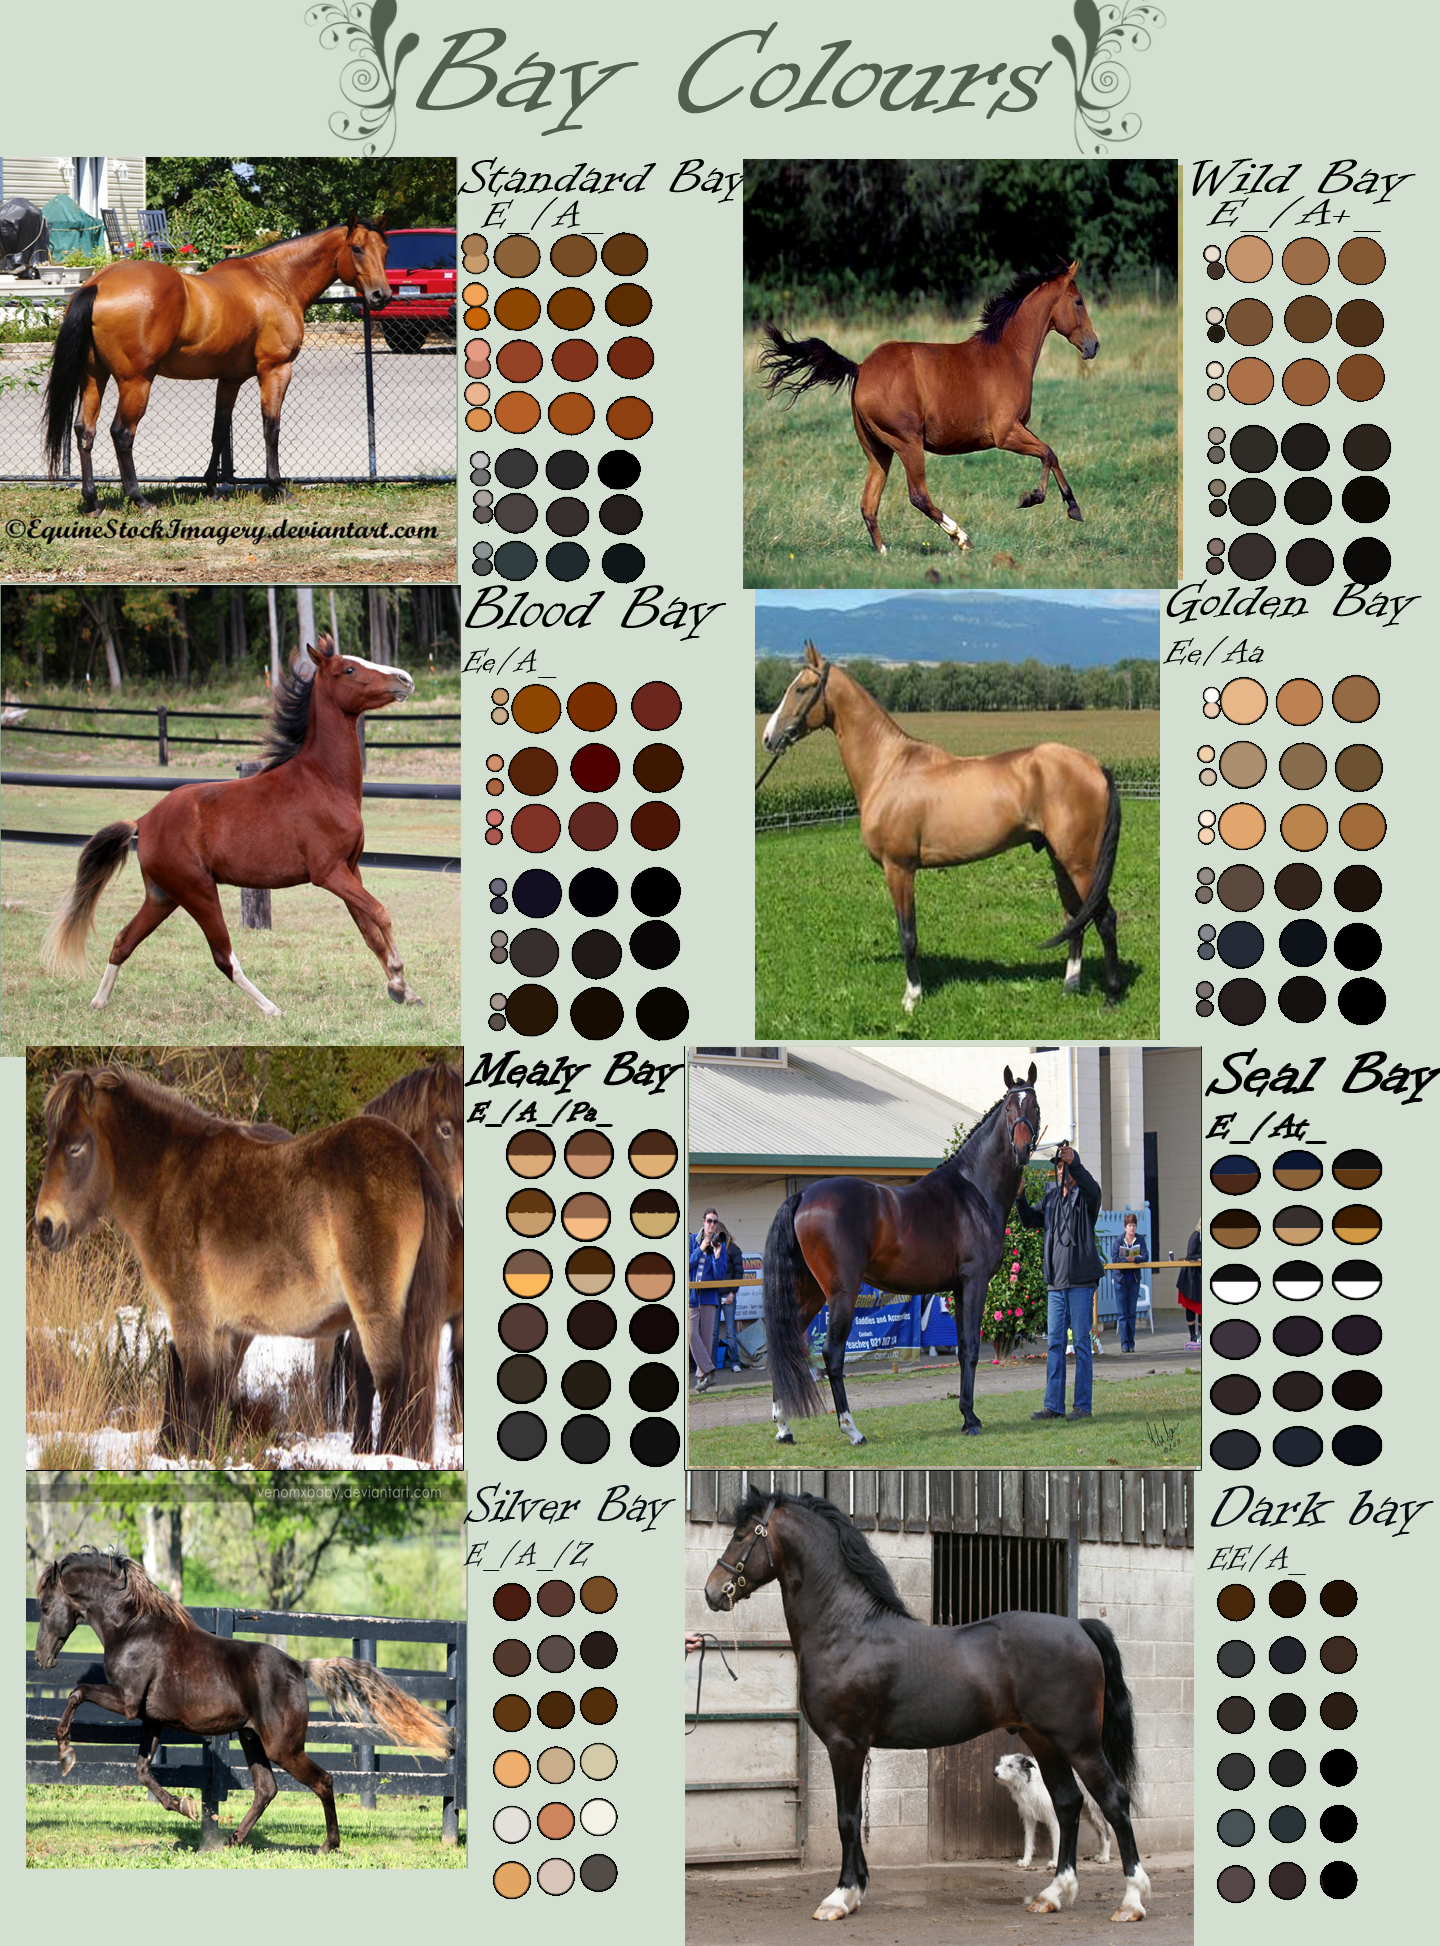 Bay Horse Colours By Edithsparrow D5966i7 Png 1 440 1 946 Pixels Horse Coat Colors Horse Coloring Bay Horse